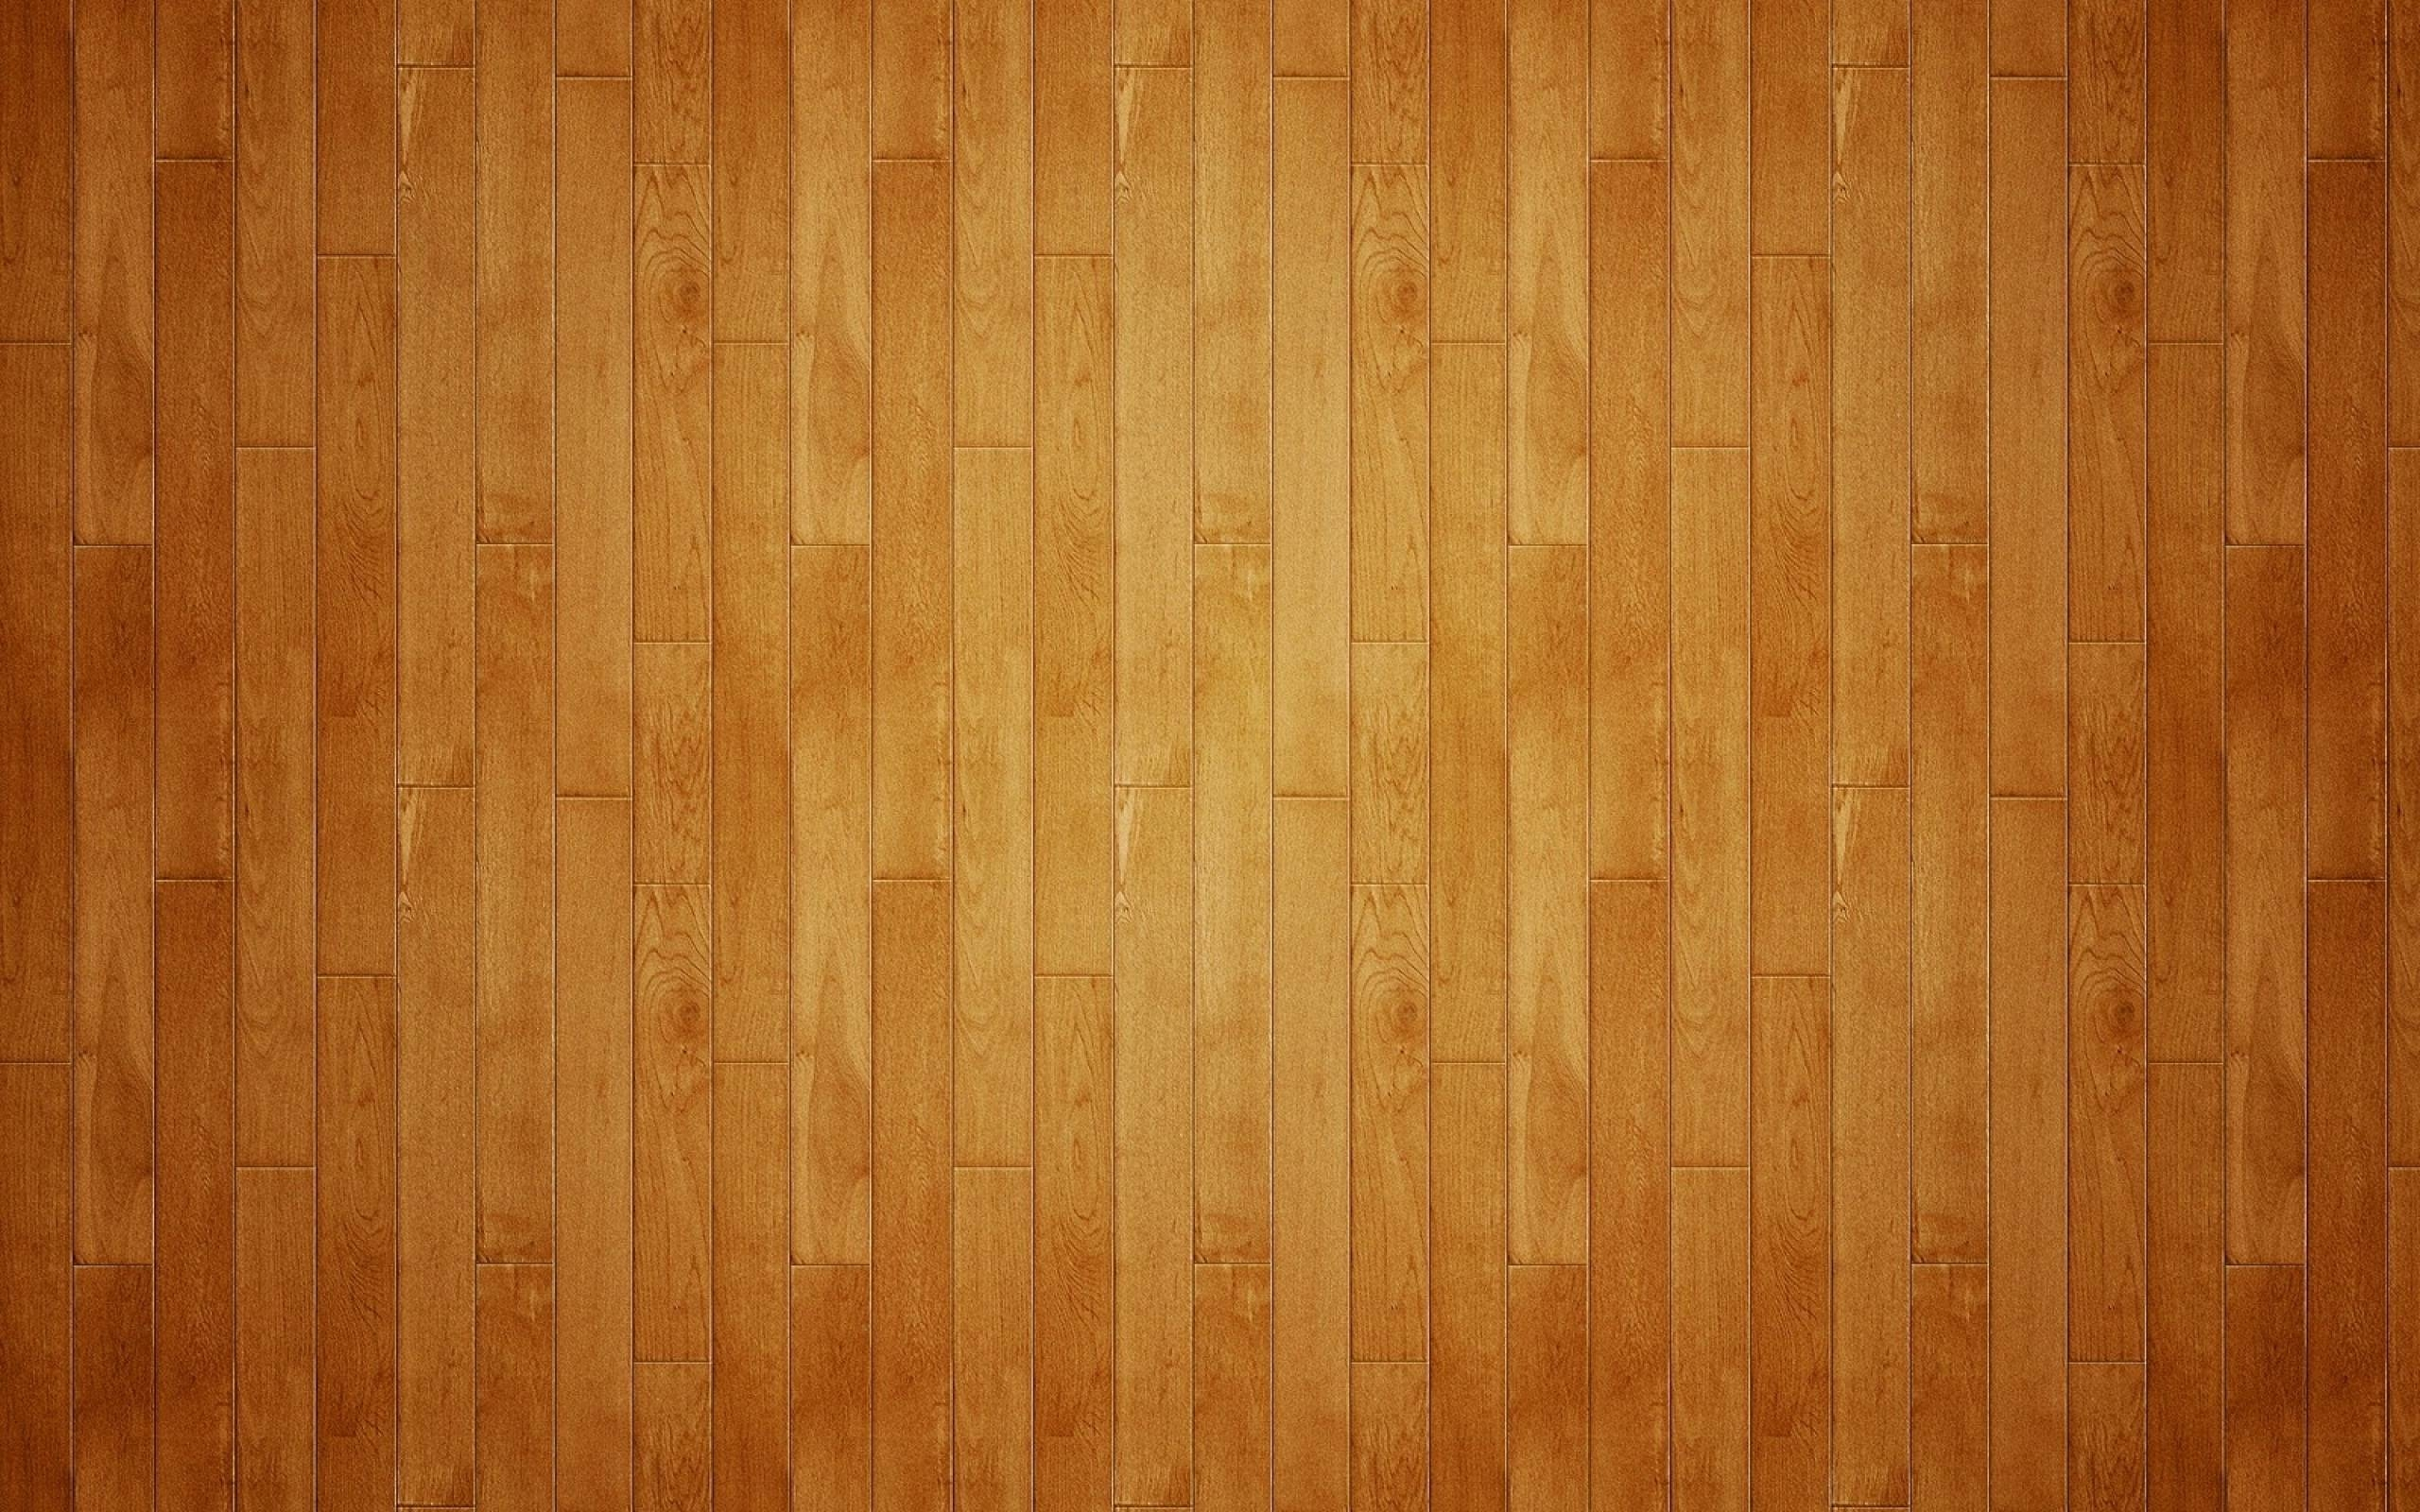 Full HD Wood Background Wallpaper